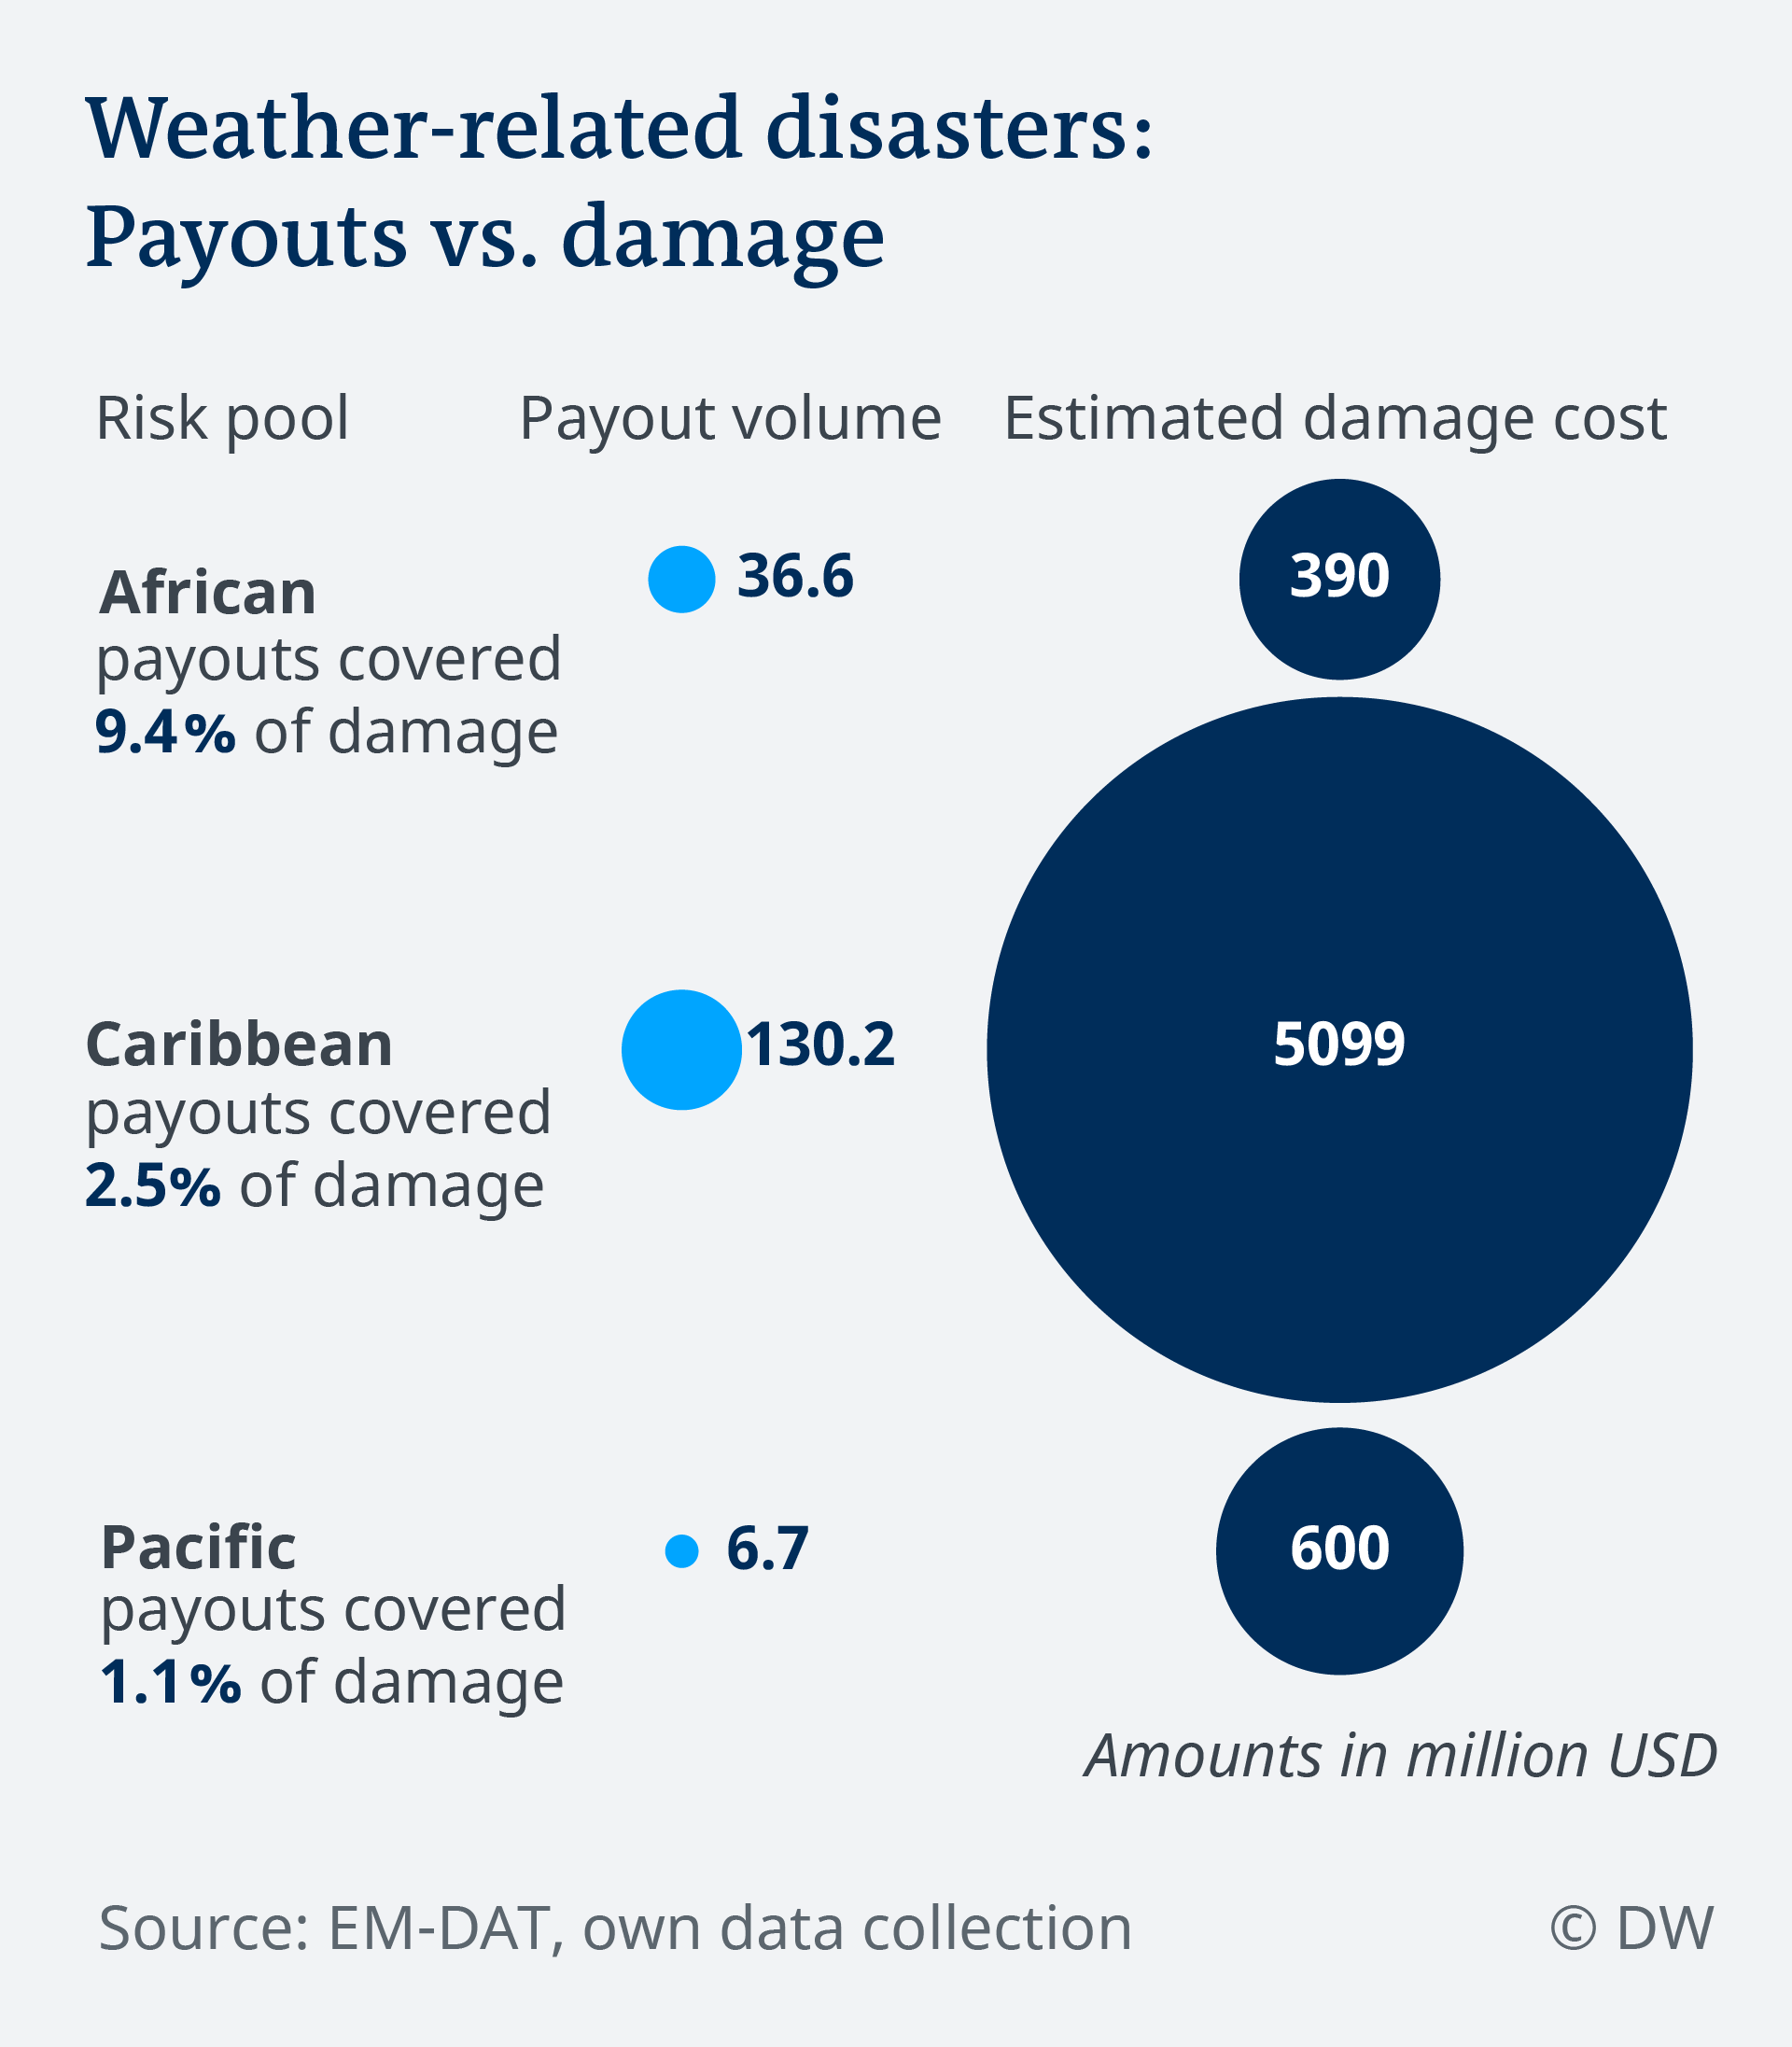 Data visualization climate risk insurance: Payouts vs. damage with weather-related disasters